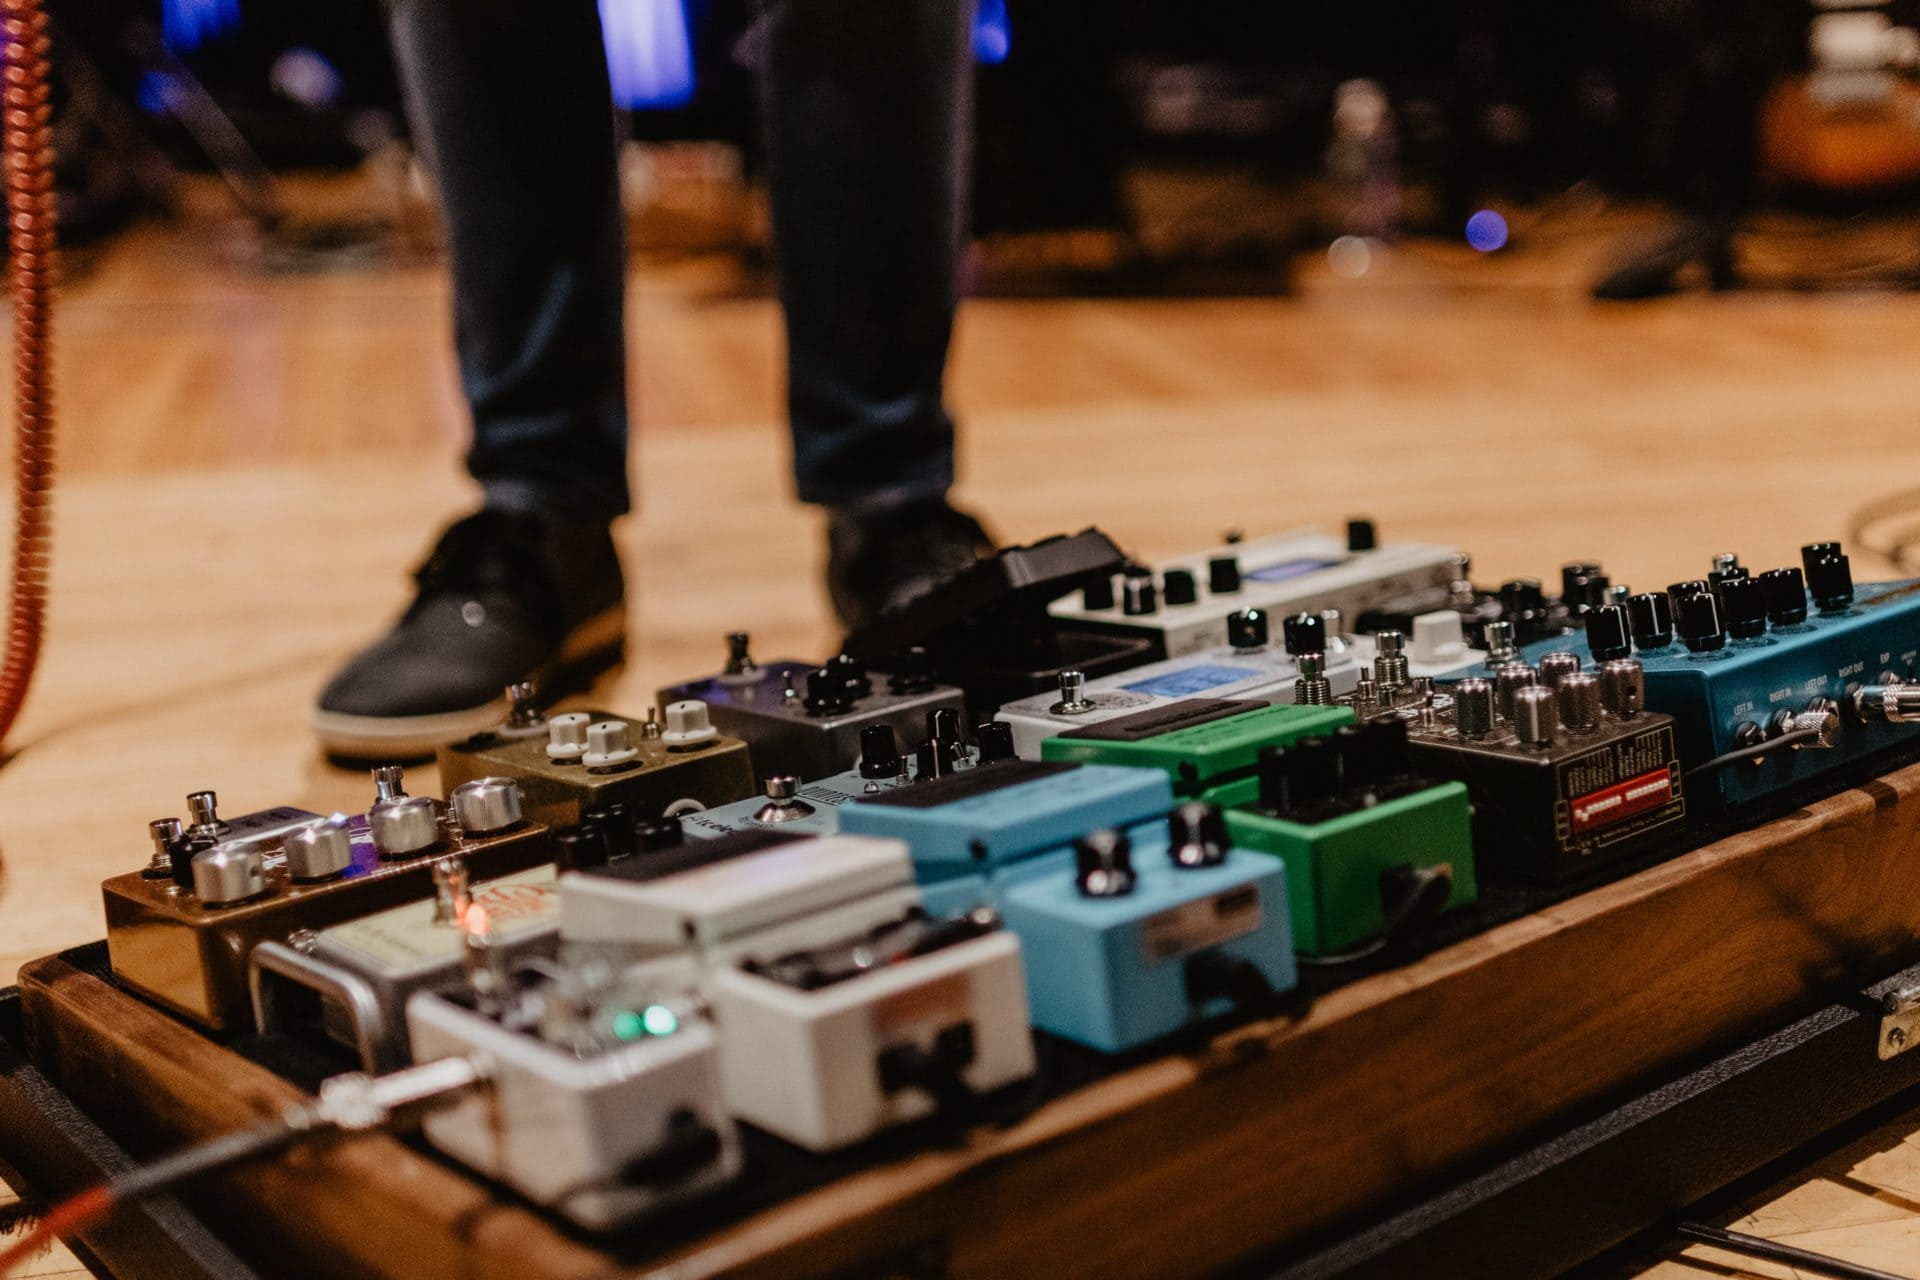 Guitar Player Looking Down at Wah Pedal on Pedalboard